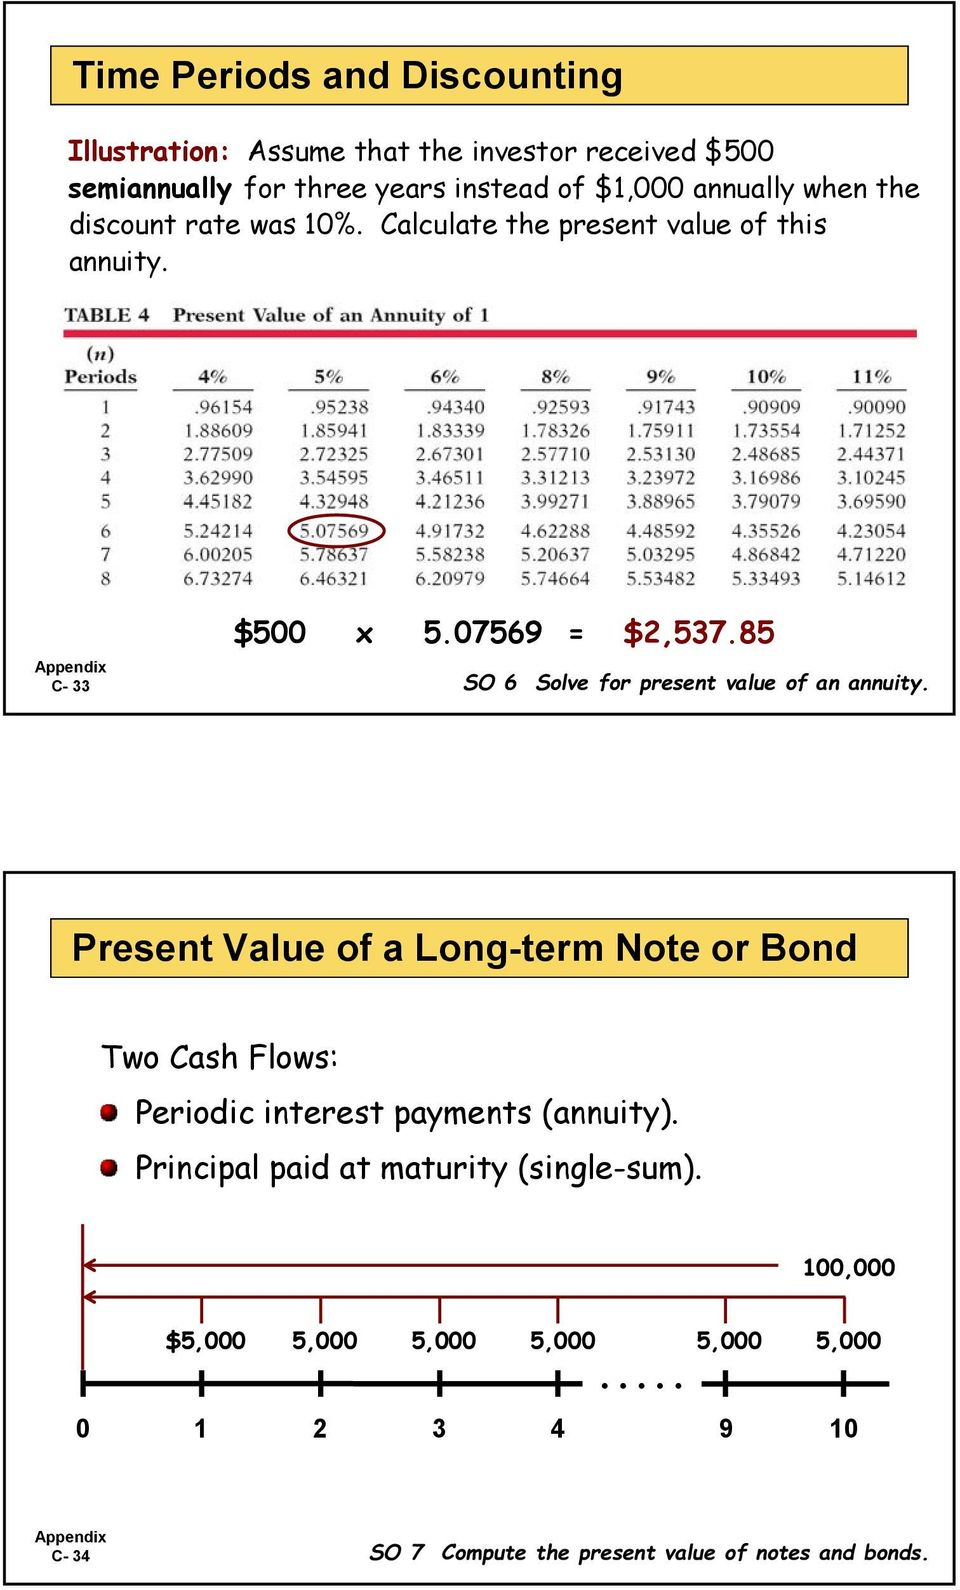 85 SO 6 Solve for present value of an annuity.